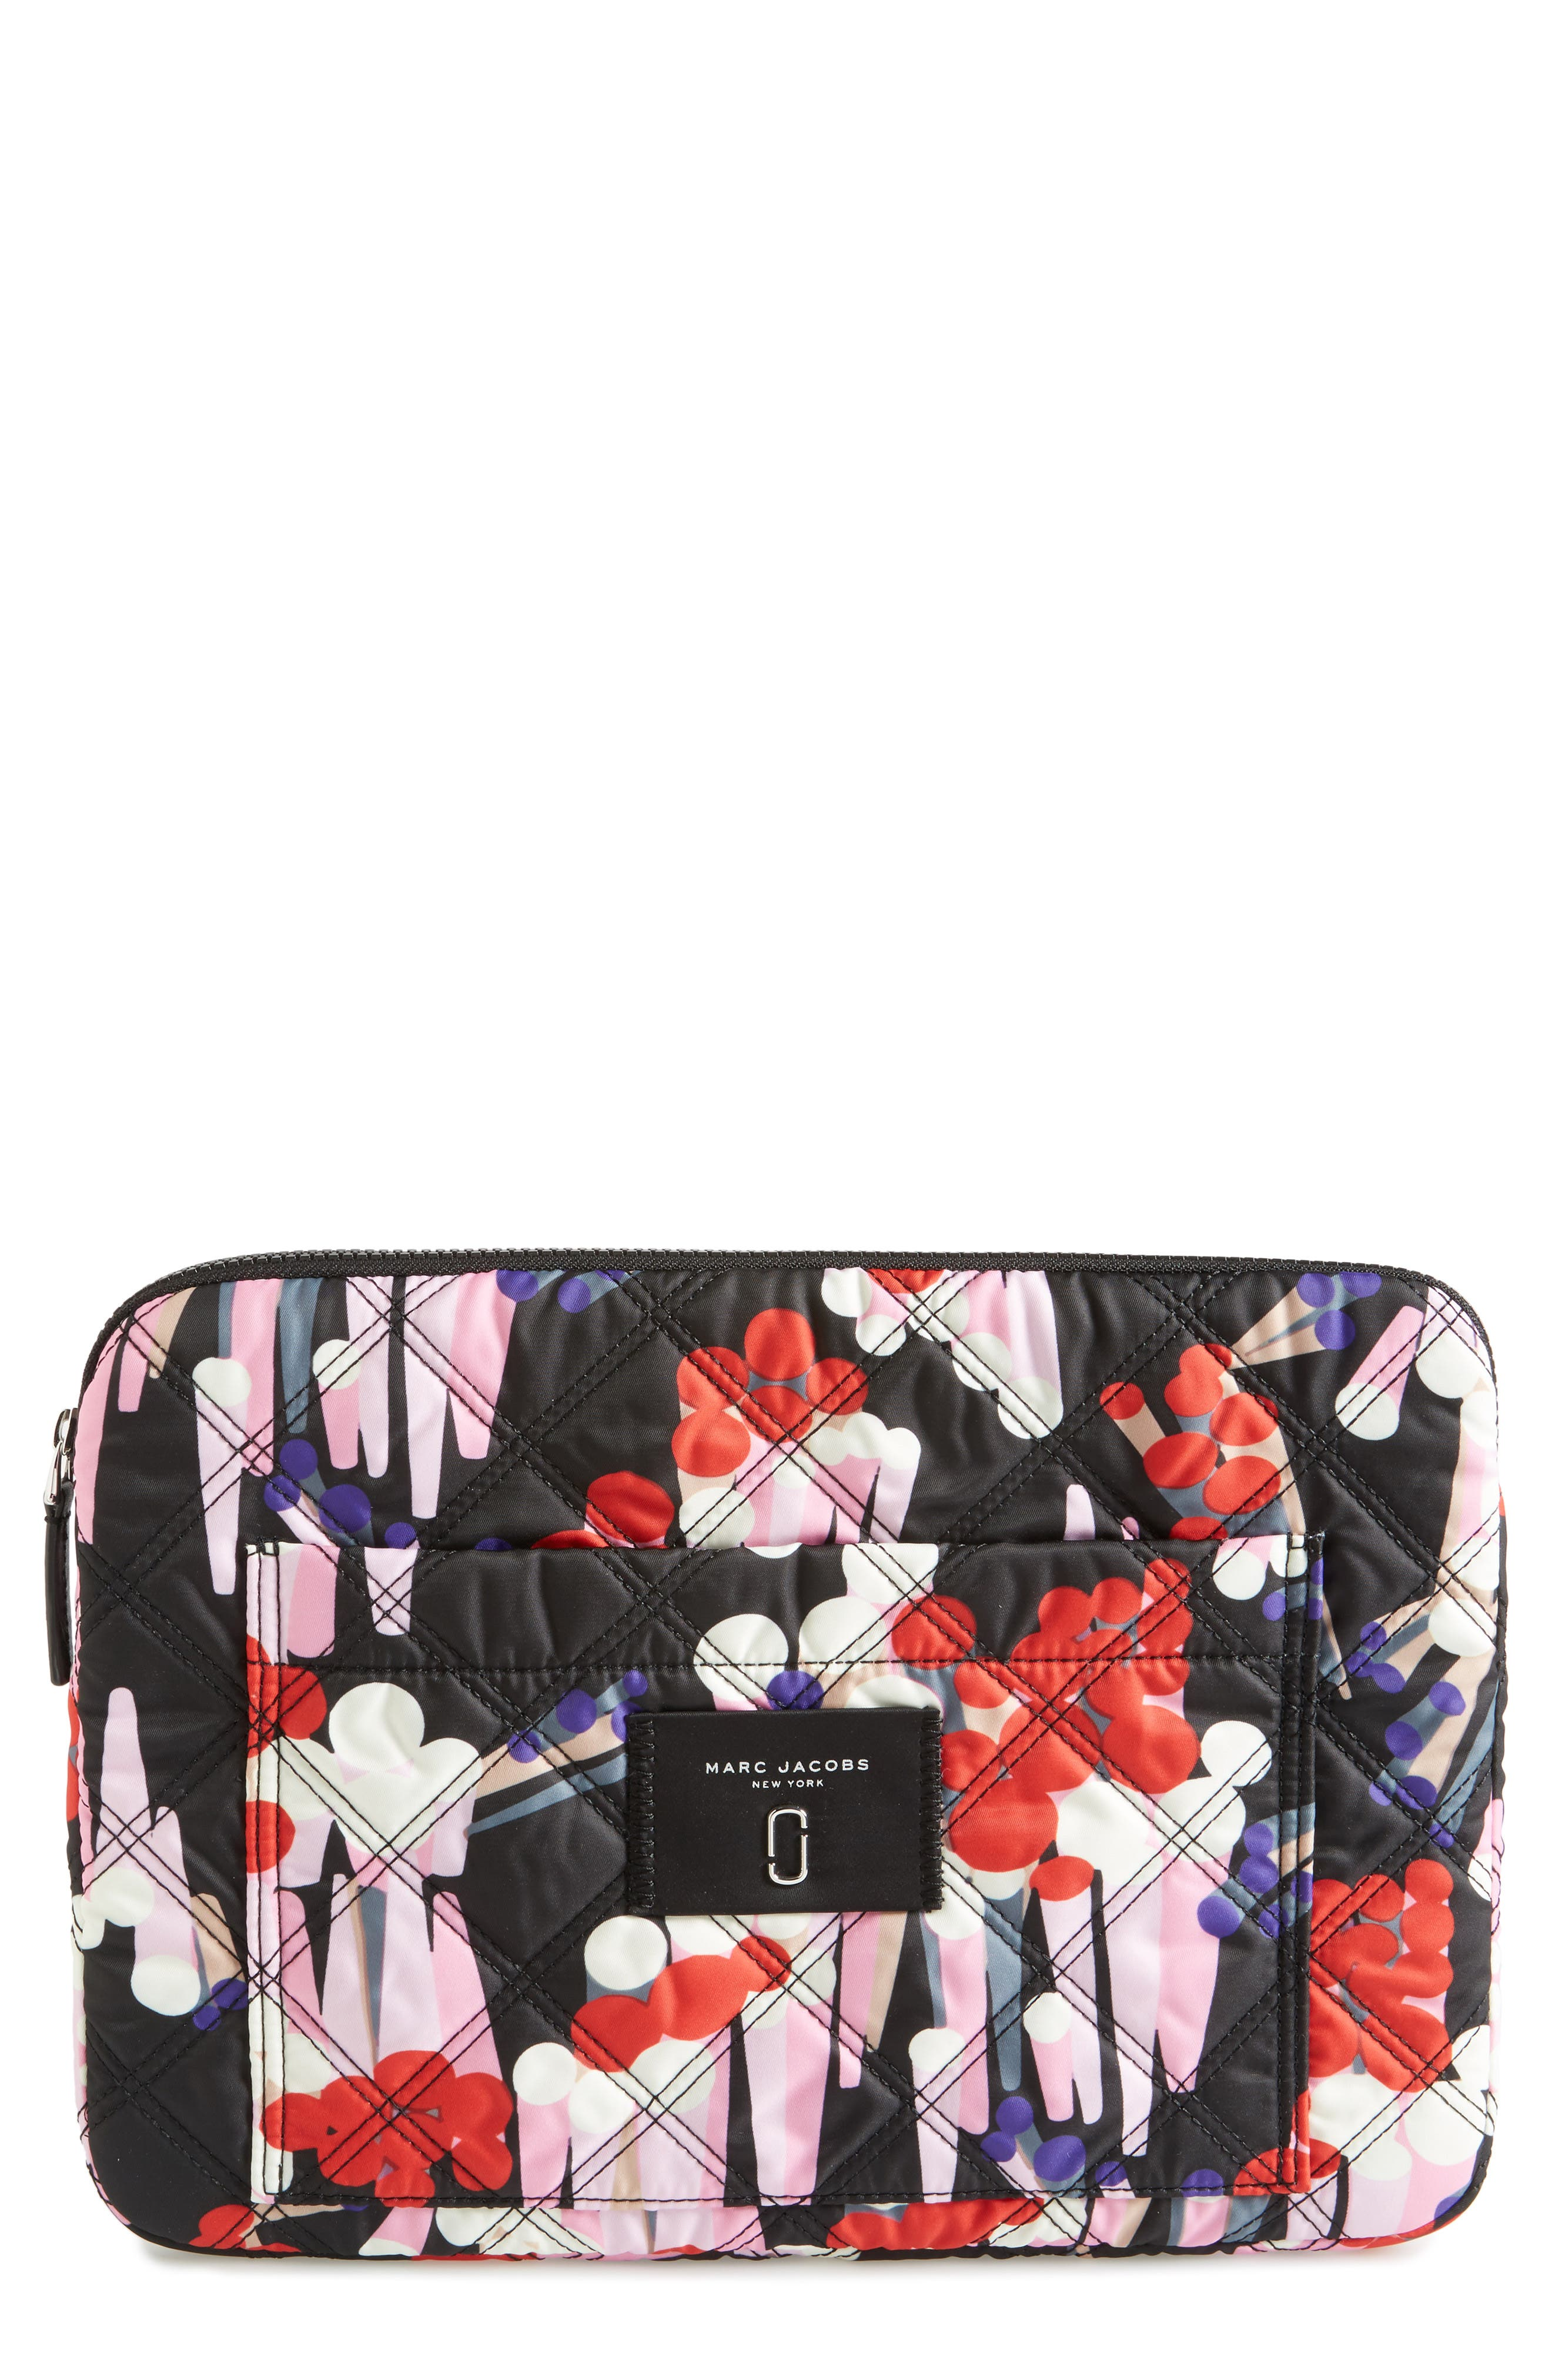 MARC JACOBS Knot Crystal 13-Inch Laptop Sleeve